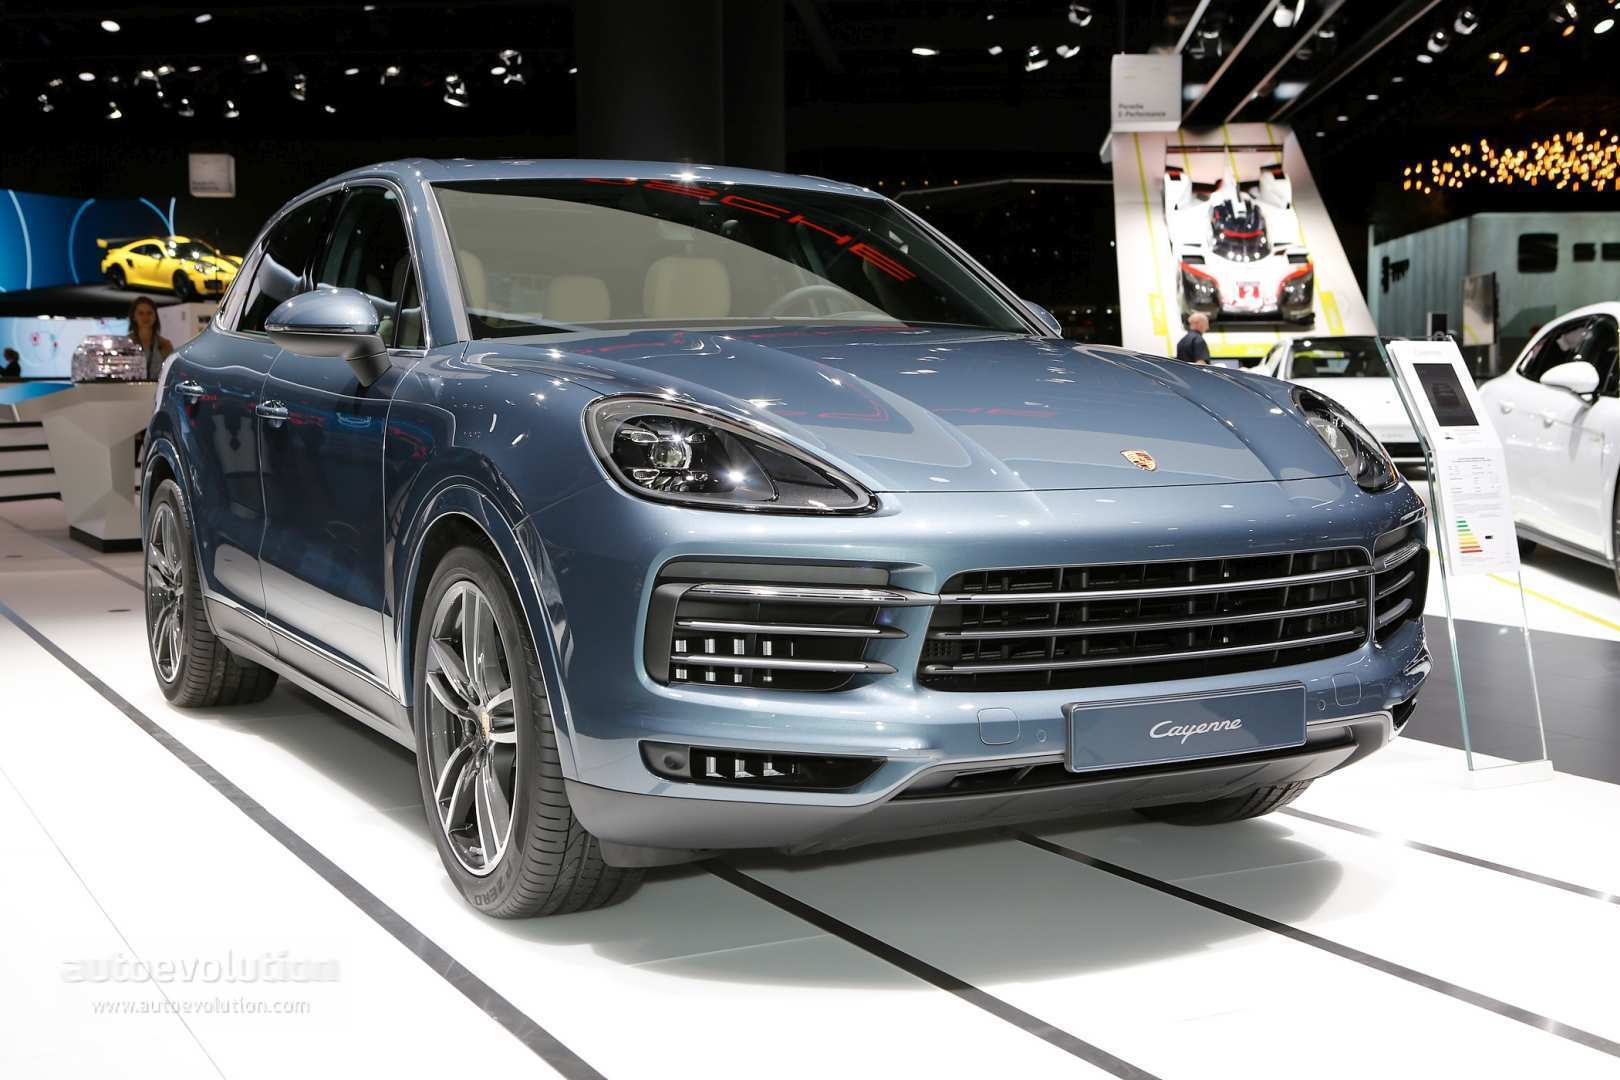 85 The Best 2019 Porsche Cayenne Turbo S Price